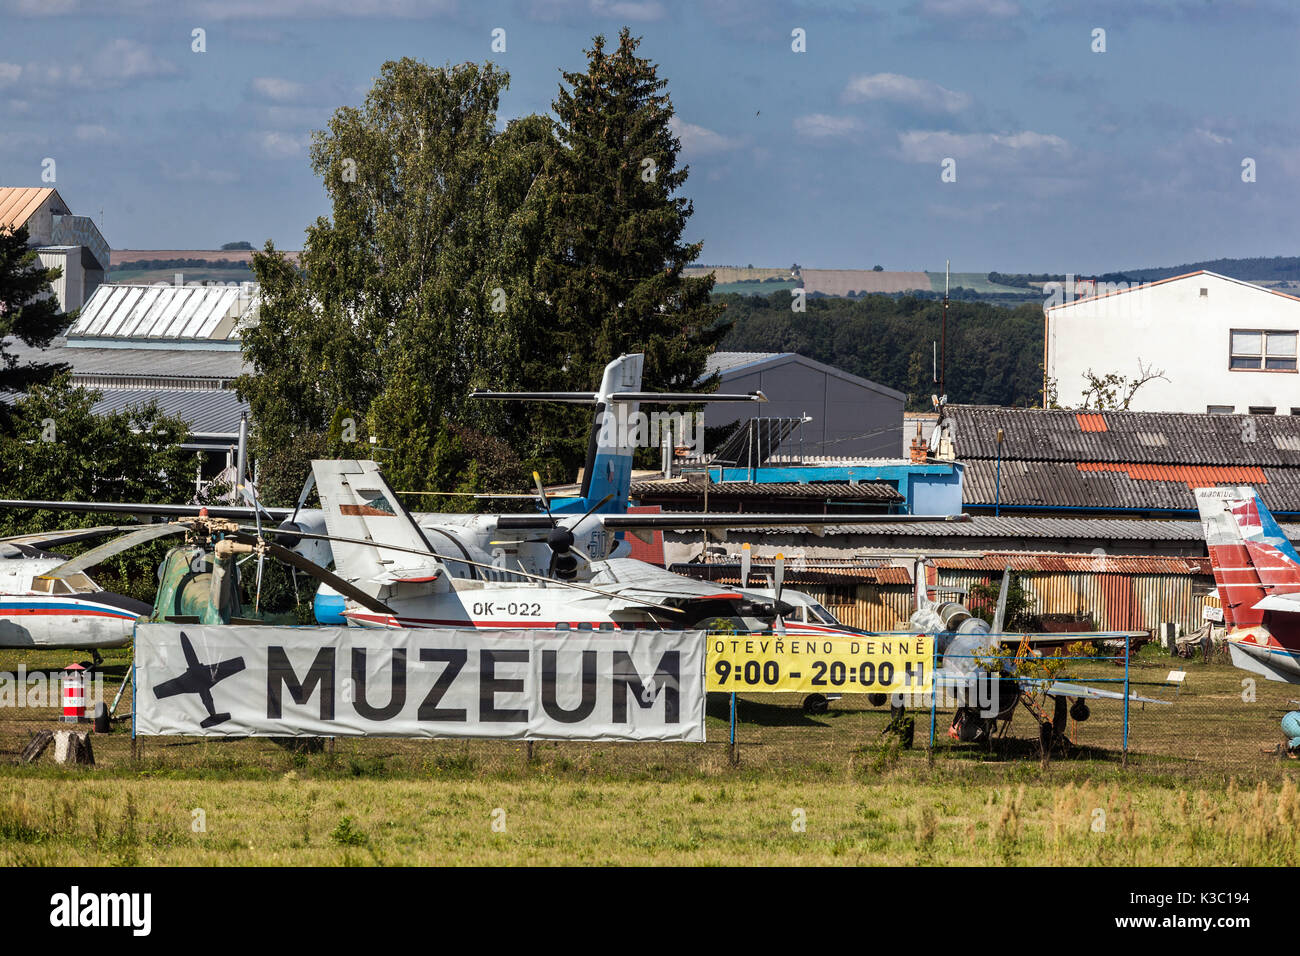 Aviation Museum, Kunovice, Czech Republic - Stock Image